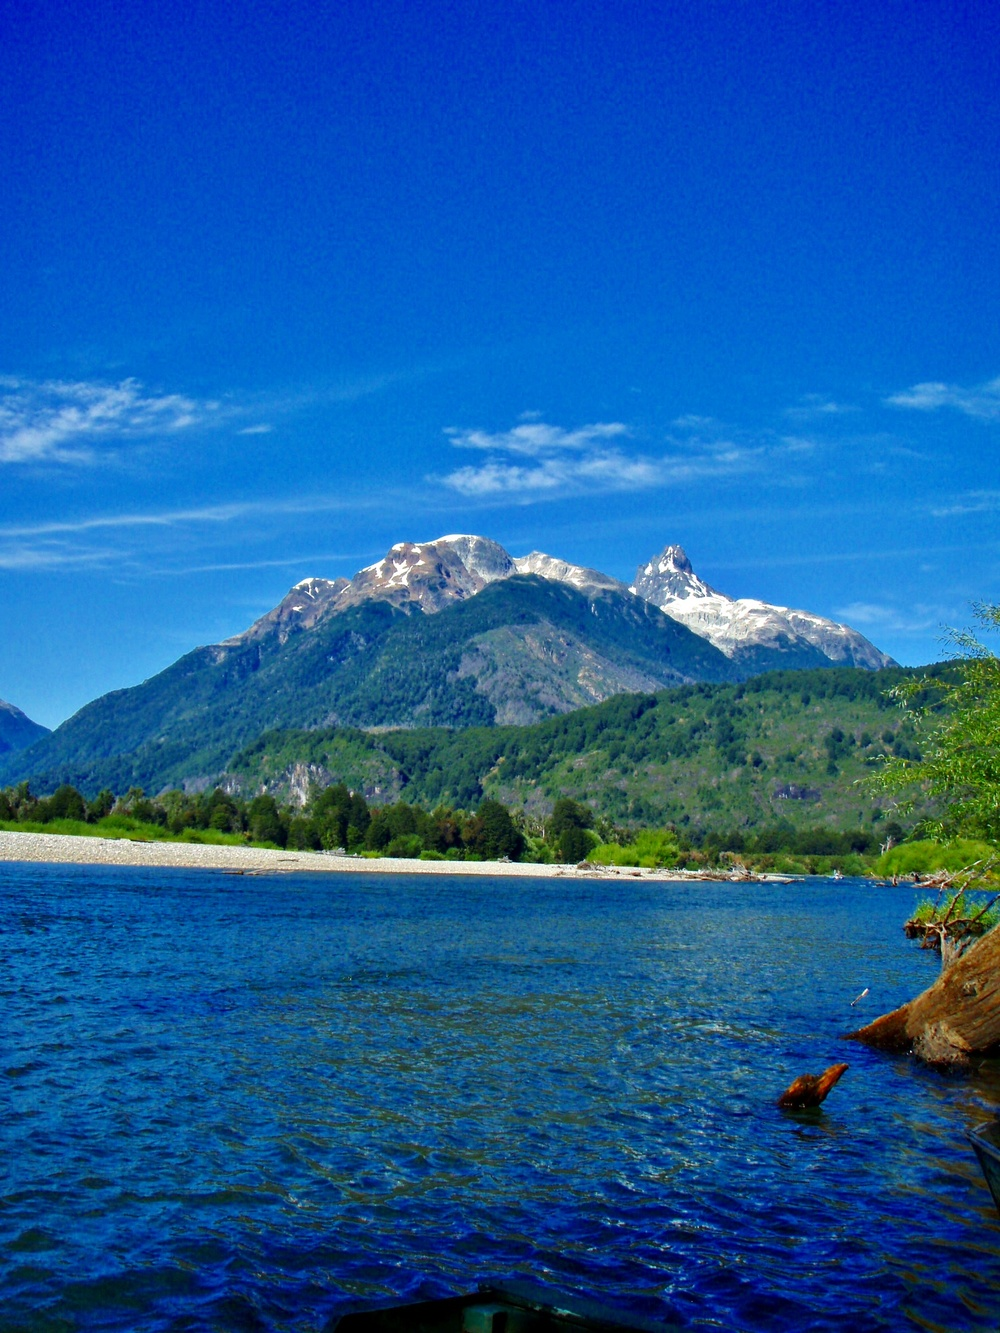 Chile Fly Fishing Lodge   Fly Fishing Chile Guide   Chile Fly Fishing   Patagonia Trout Adventures  